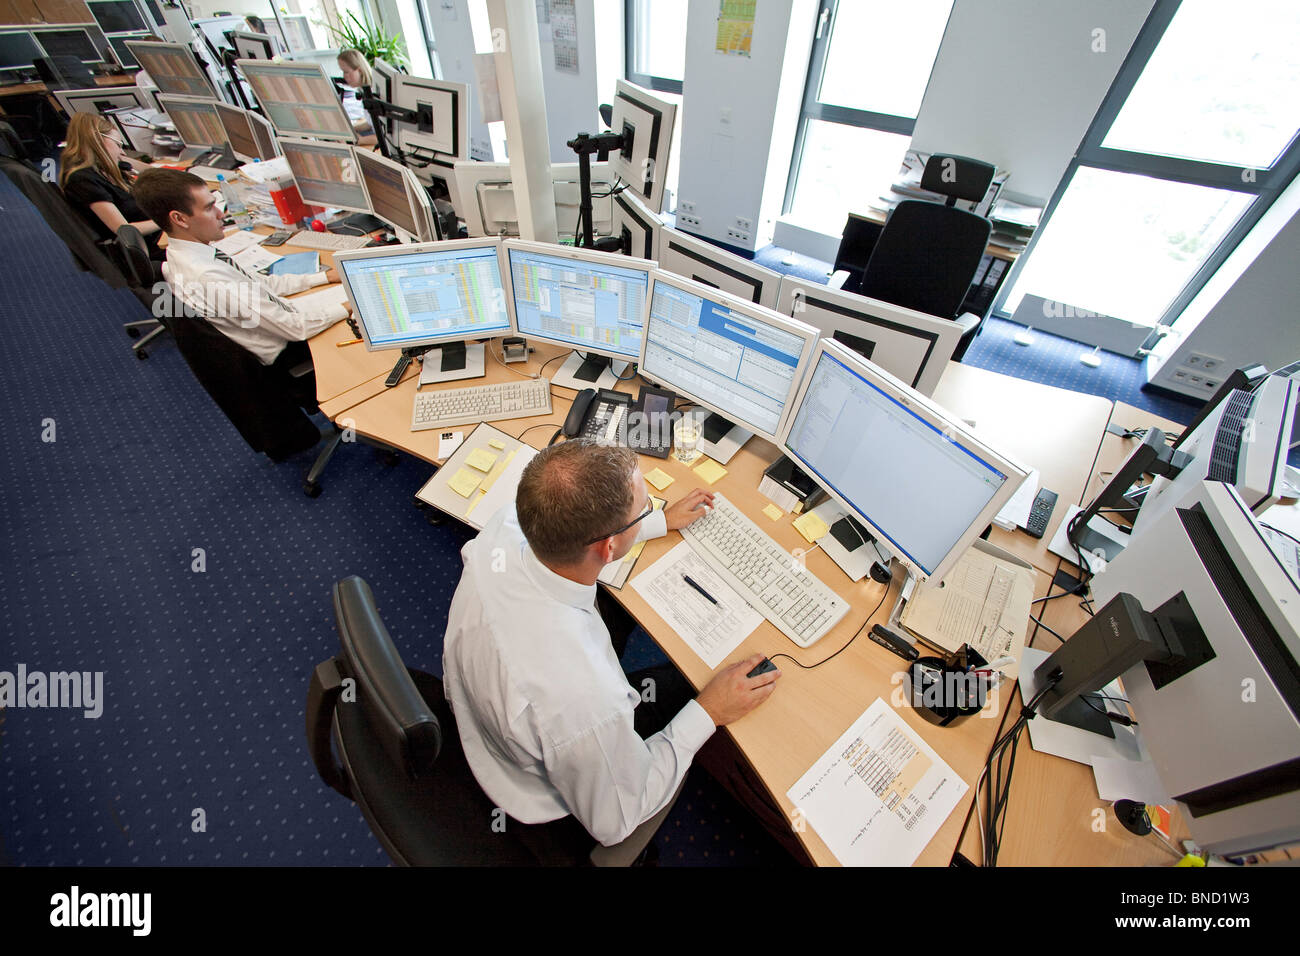 European Energy Exchange, EEX, brokers in the trading room at computers, Leipzig, Germany - Stock Image